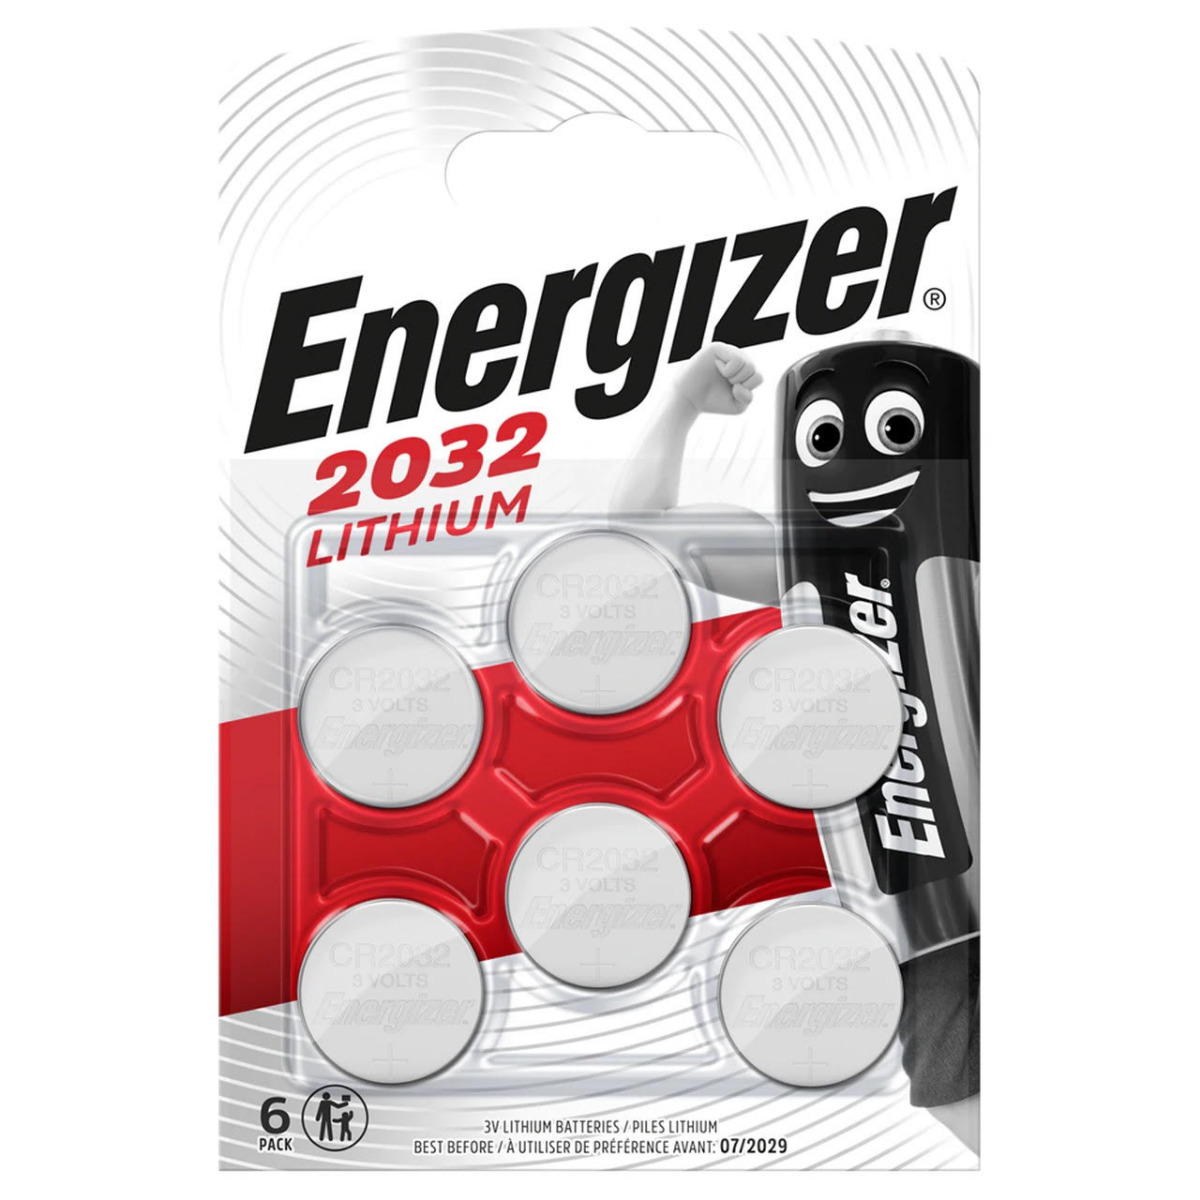 Energizer CR2032 Coin Cell 3V Lithium Batteries | 6 Pack